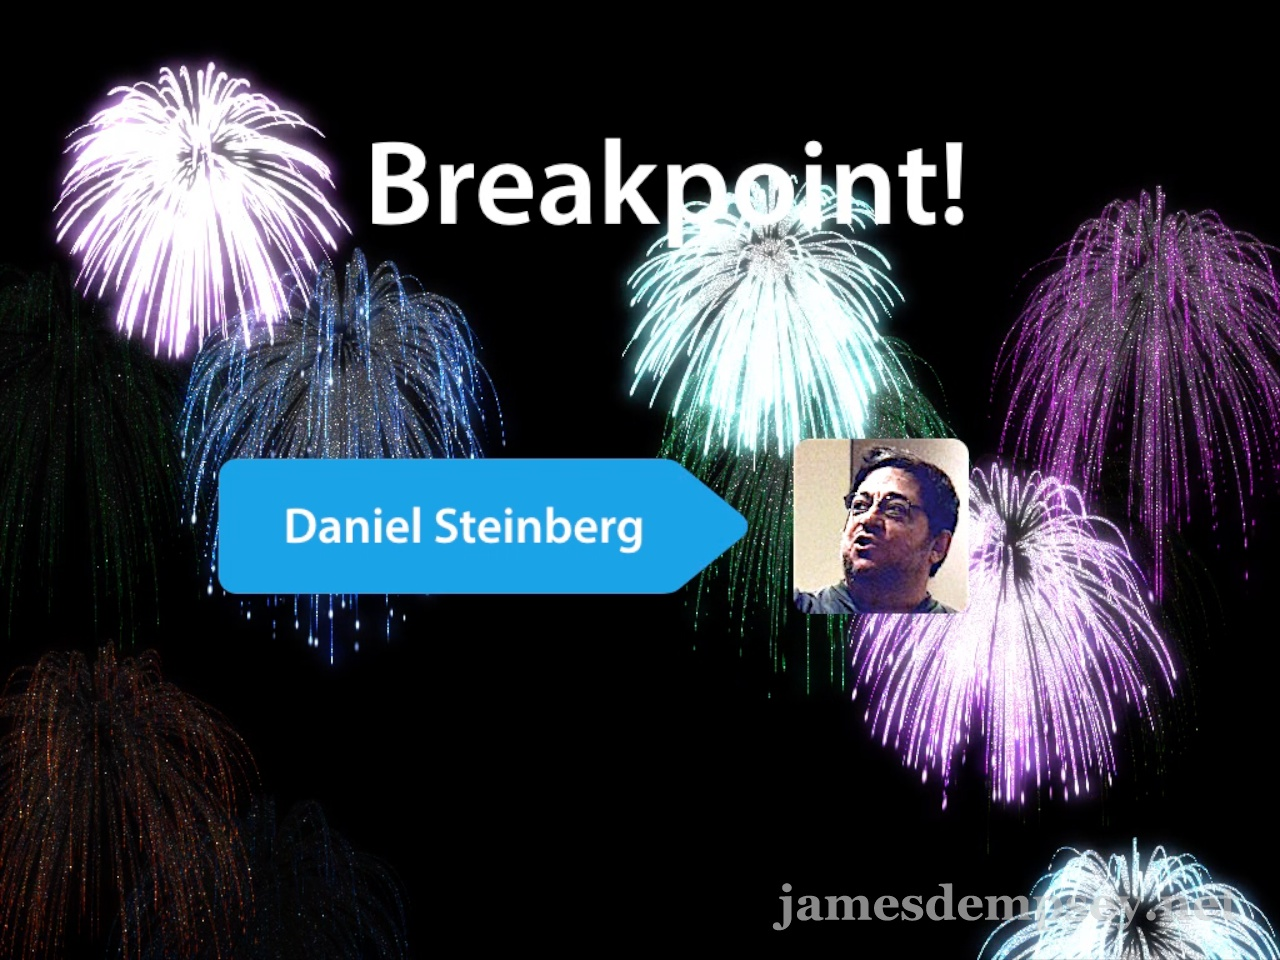 Image of fireworks behind Daniel Steinberg's name and photo to celebrate his induction into the Breakpoints